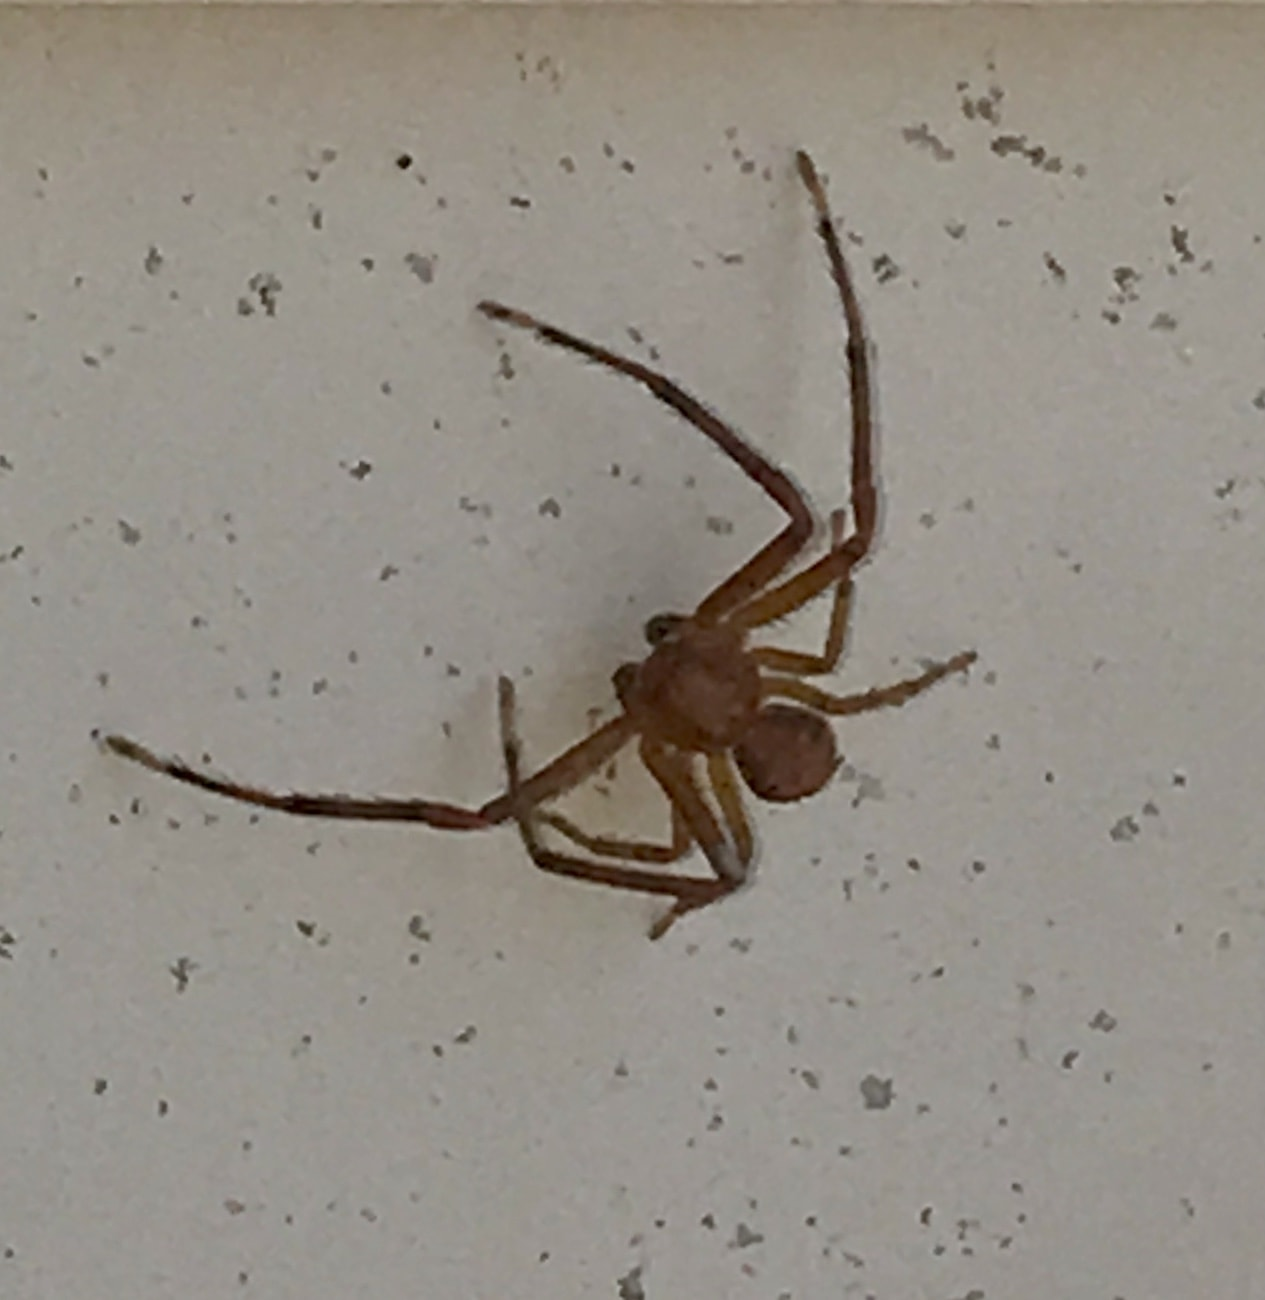 Picture of Xysticus (Ground Crab Spiders) - Male - Dorsal